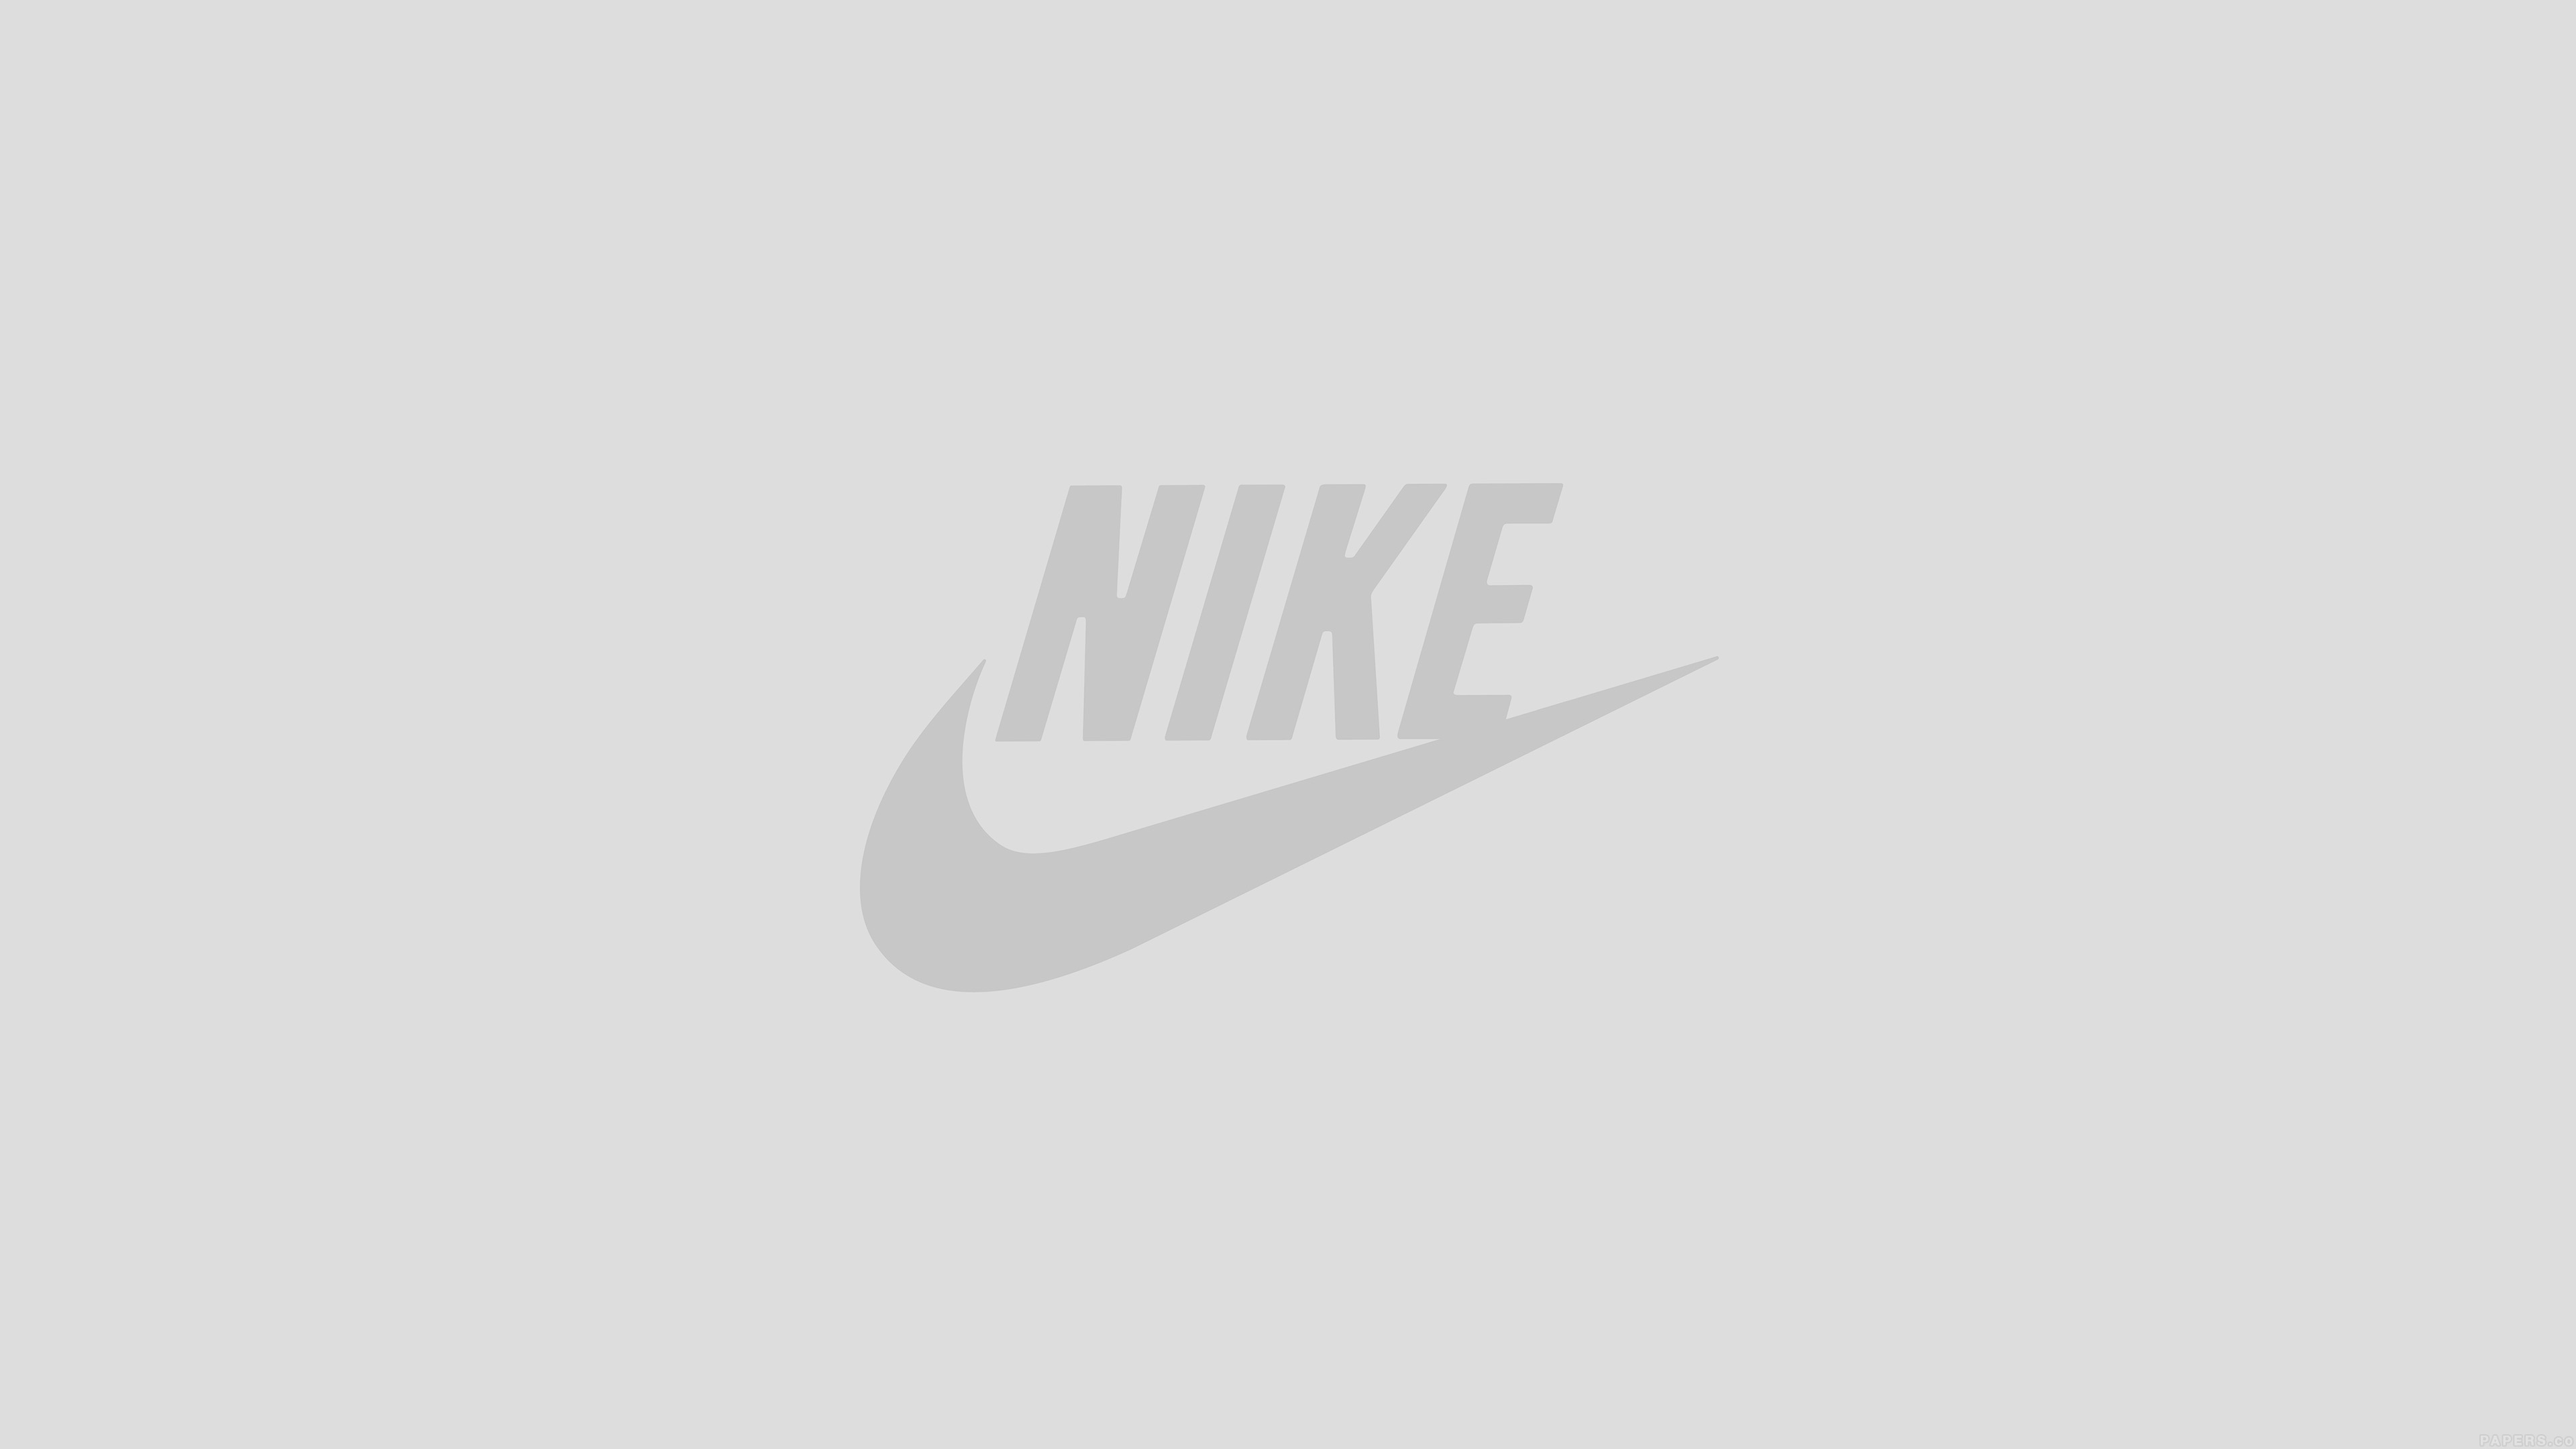 Download Wallpaper Mac Nike - papers  Collection_365965.jpg